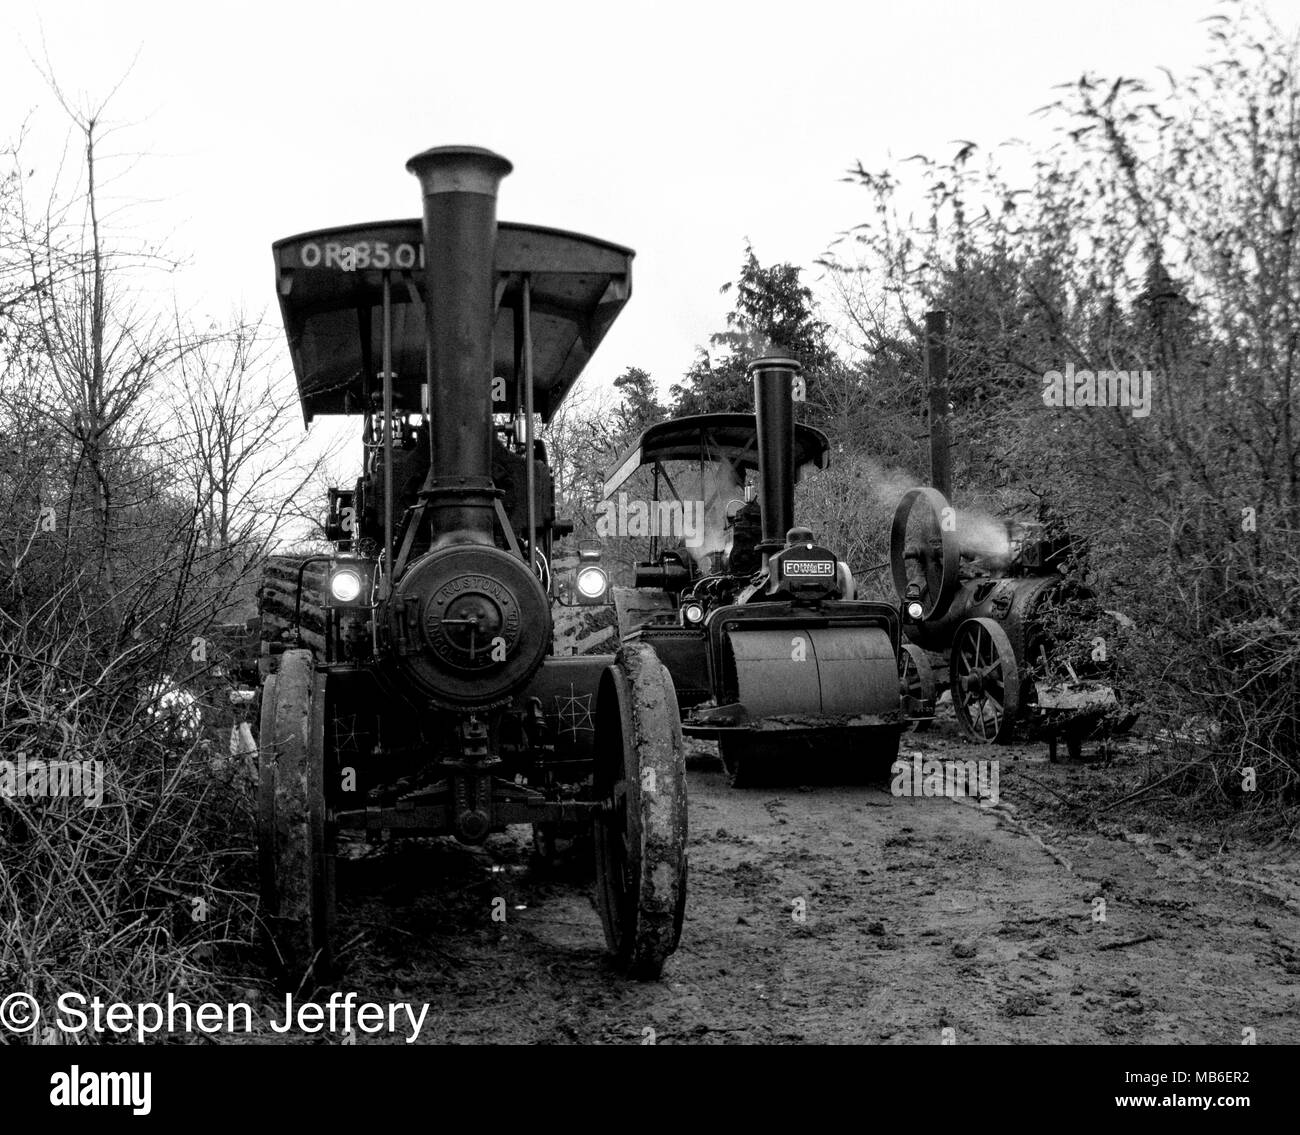 black and white photo of steam traction engines and a portable engien - Stock Image